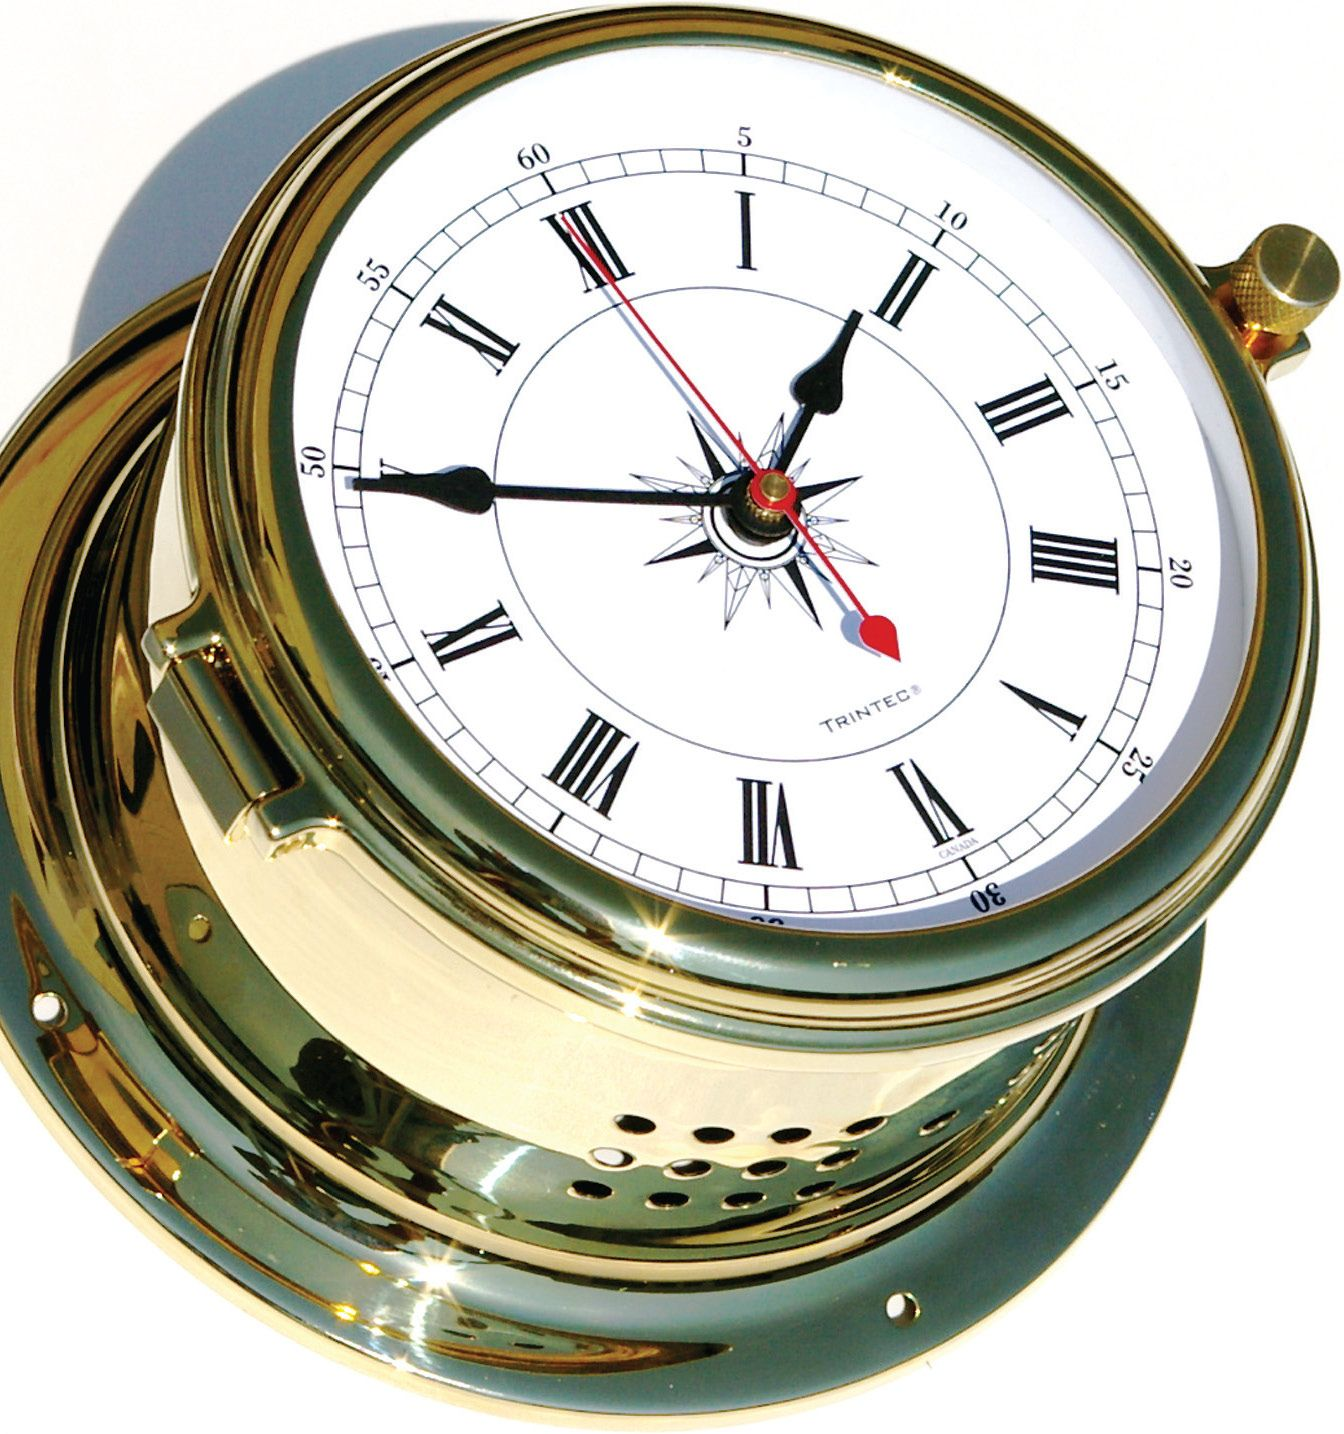 Navigator Quartz Clock - Introducing a new benchmark in precision analog instruments with a lifetime Zirconium finish - One year manufacturer's warranty - $300.00 - www.trintec.com